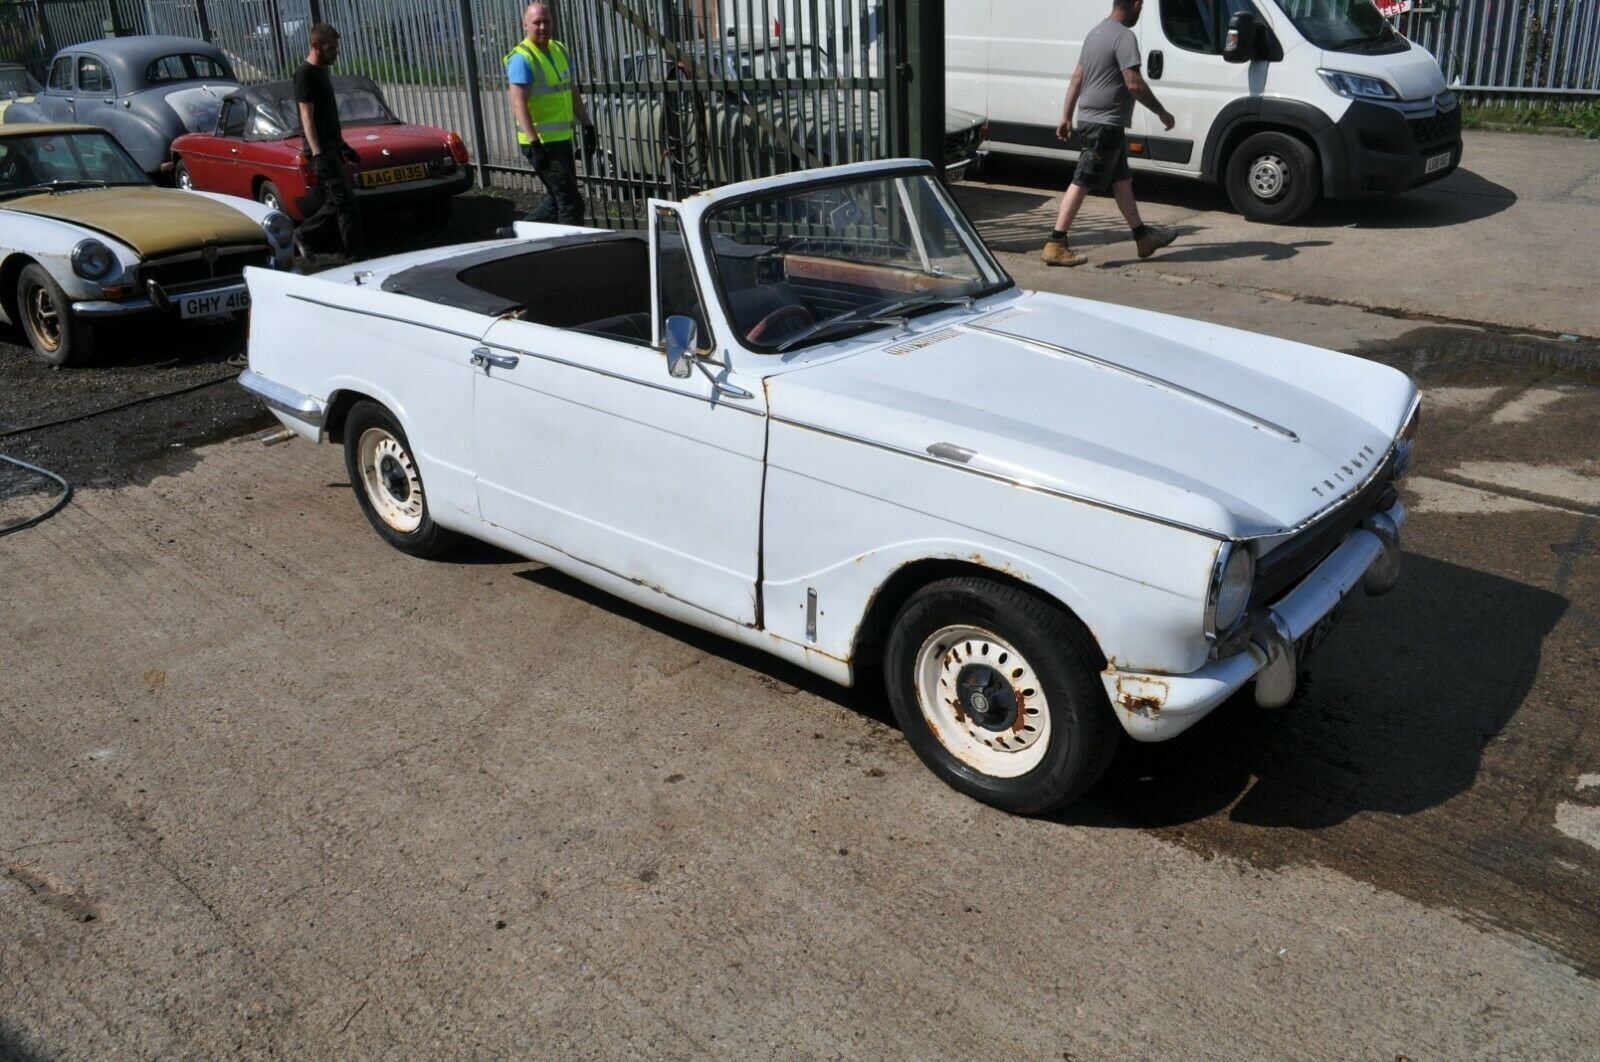 1963 1970 TRIUMPH HERALD CONVERTIBLE 13/60 CLASSIC CAR PROJECT  SOLD (picture 3 of 6)